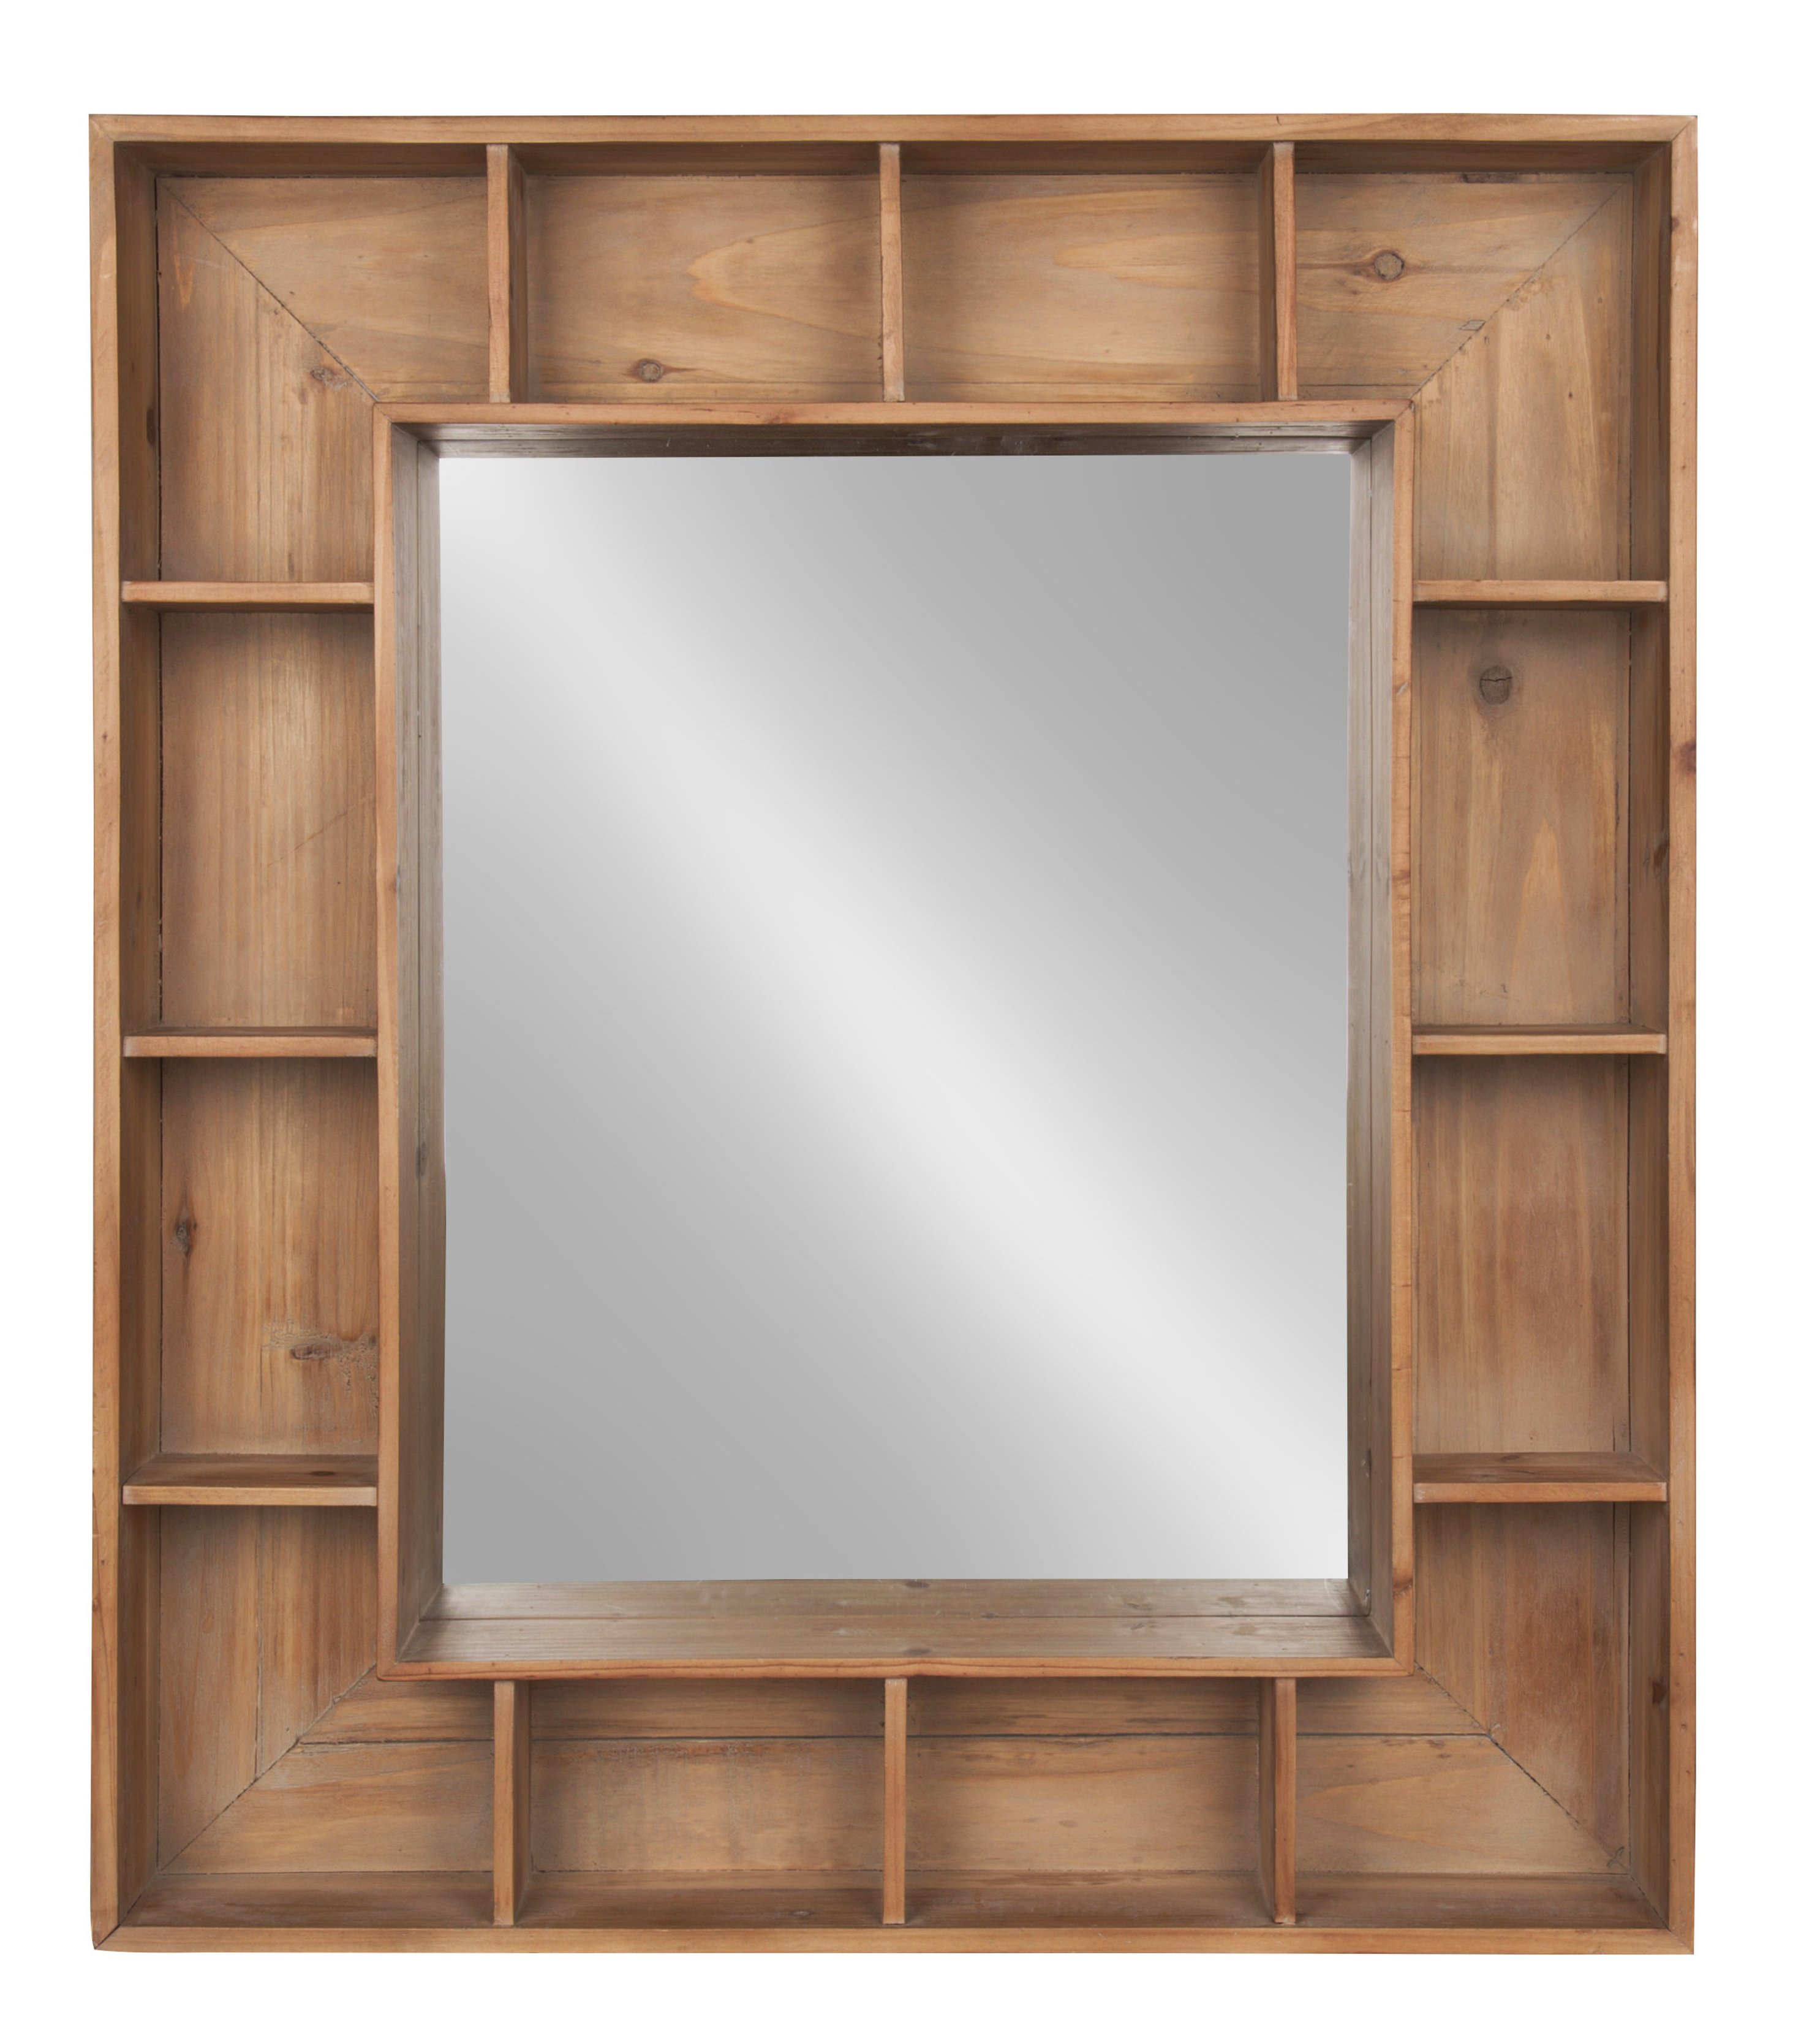 Gretel Rustic Wood Cubby Framed Wall Storage Accent Mirror Within Trendy Rustic Wood Wall Mirrors (View 12 of 20)